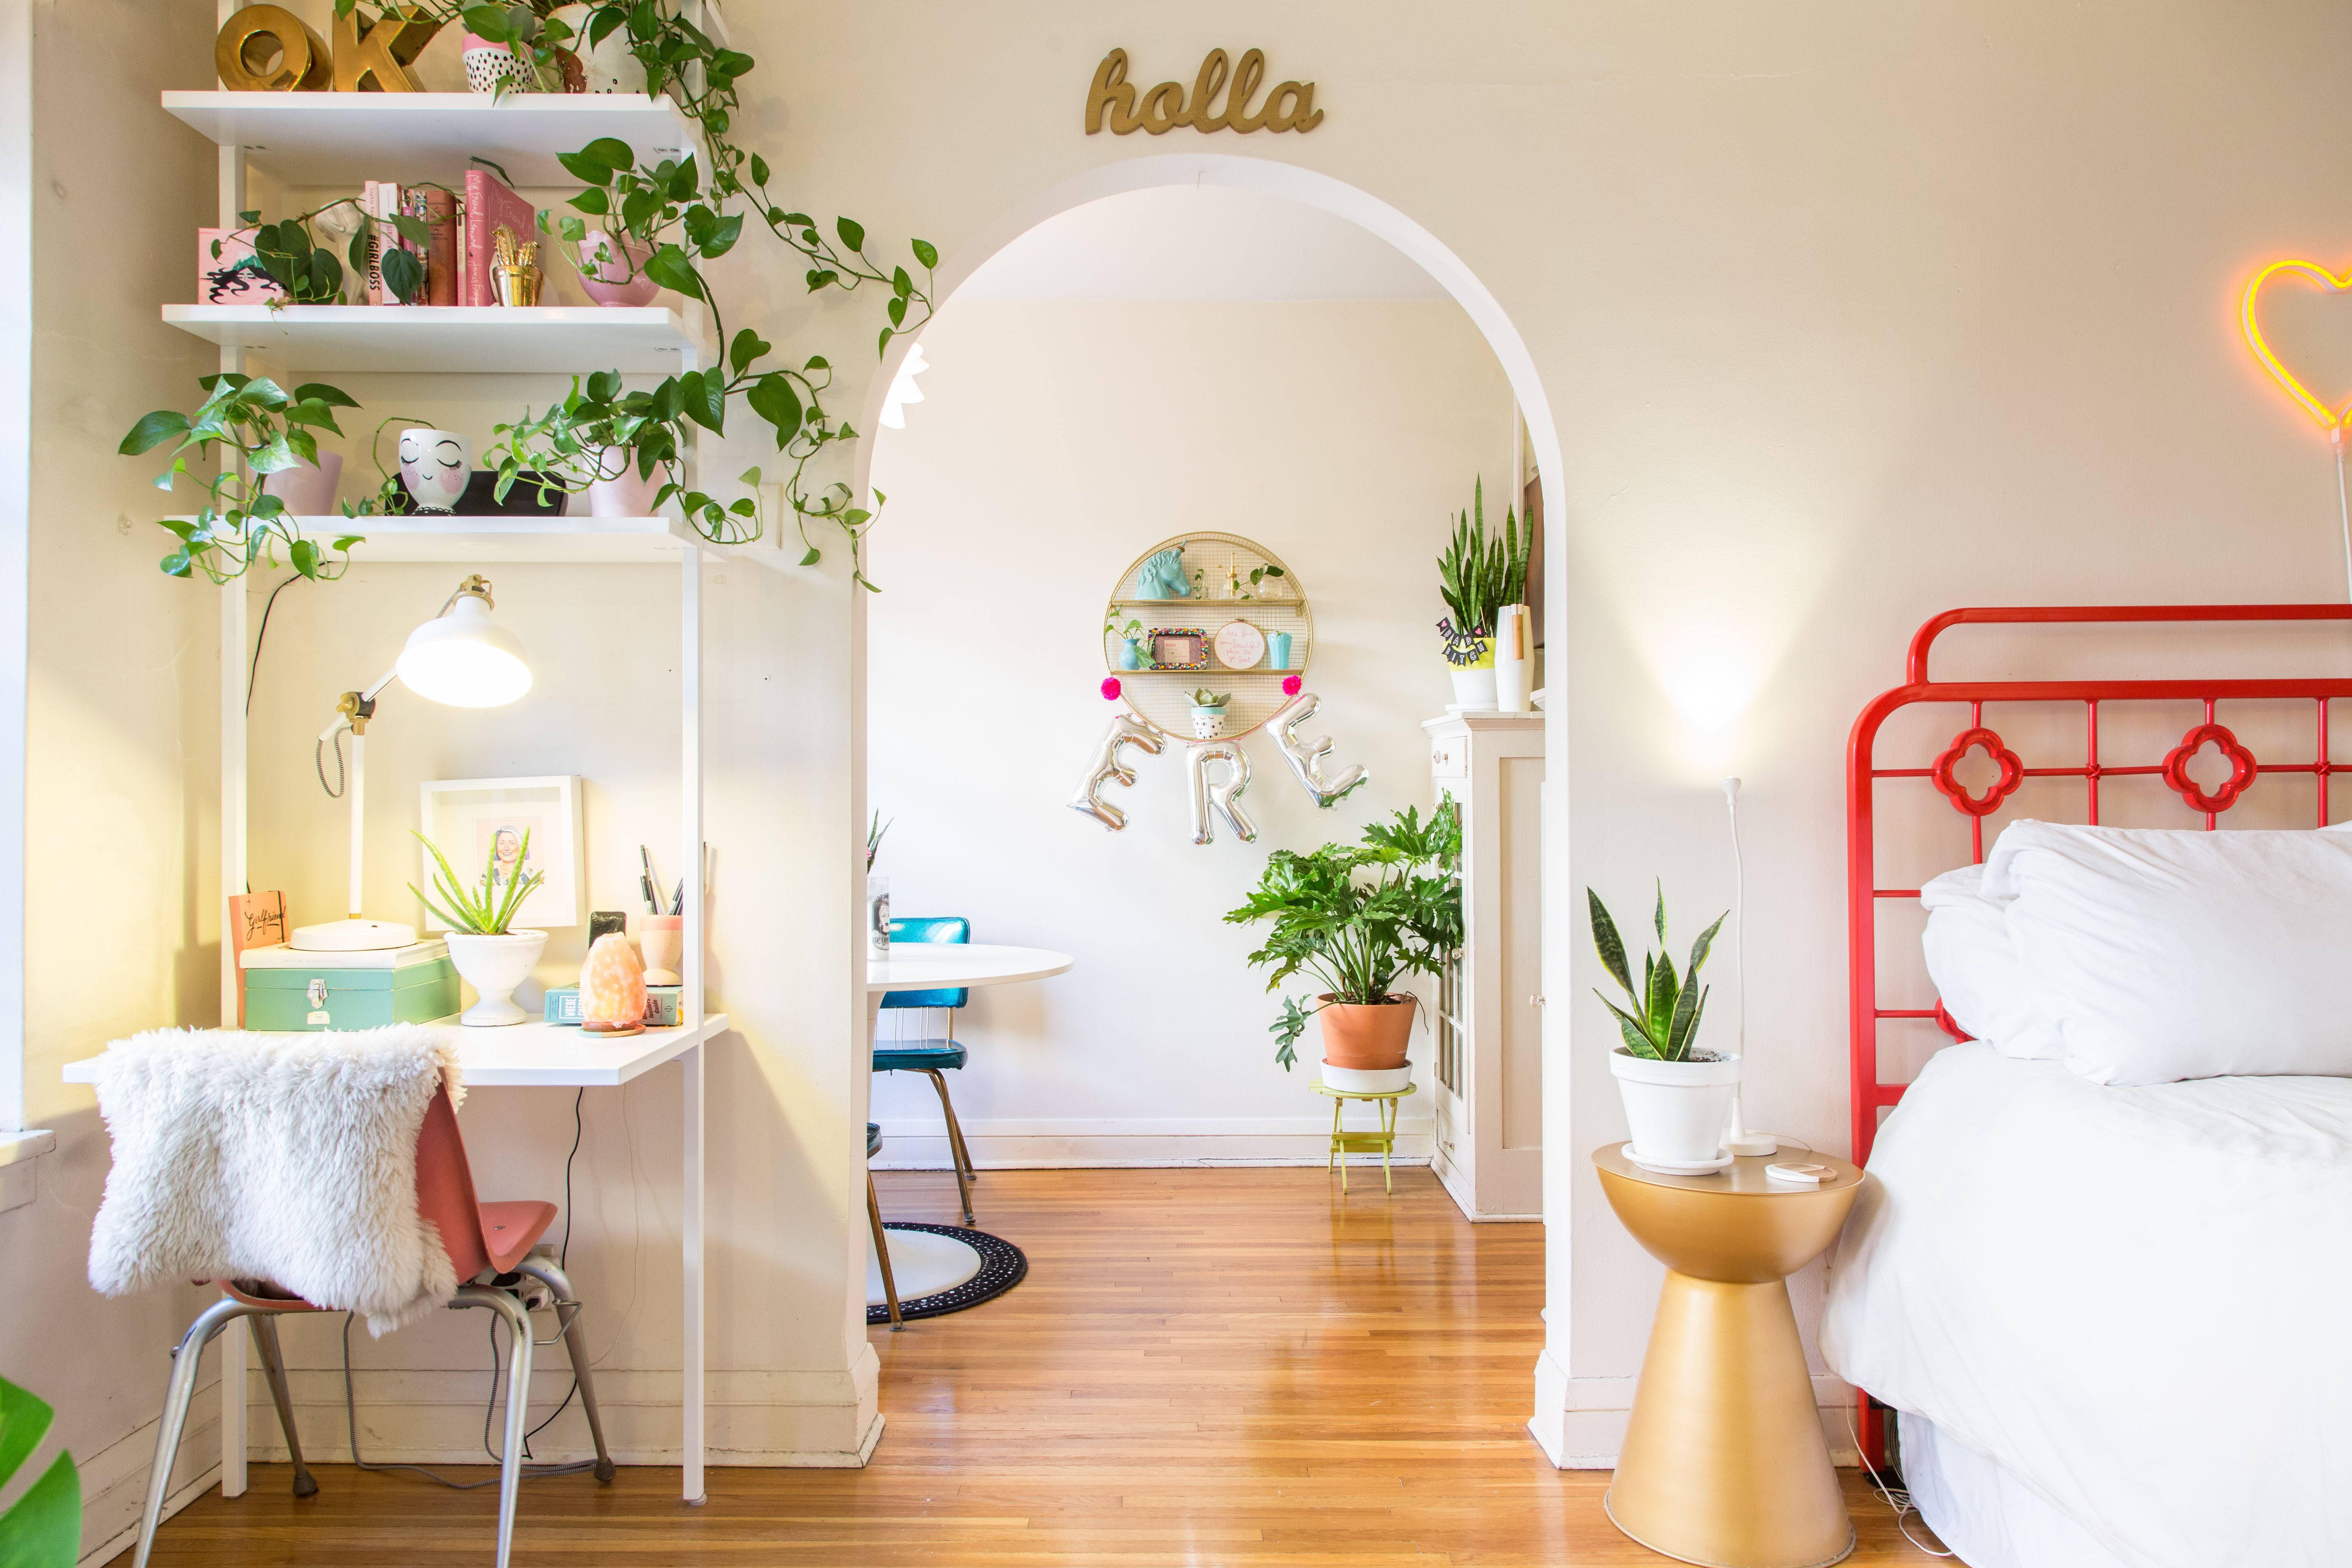 A 400 Square Foot Studio Packs a Sassy Creative Punch